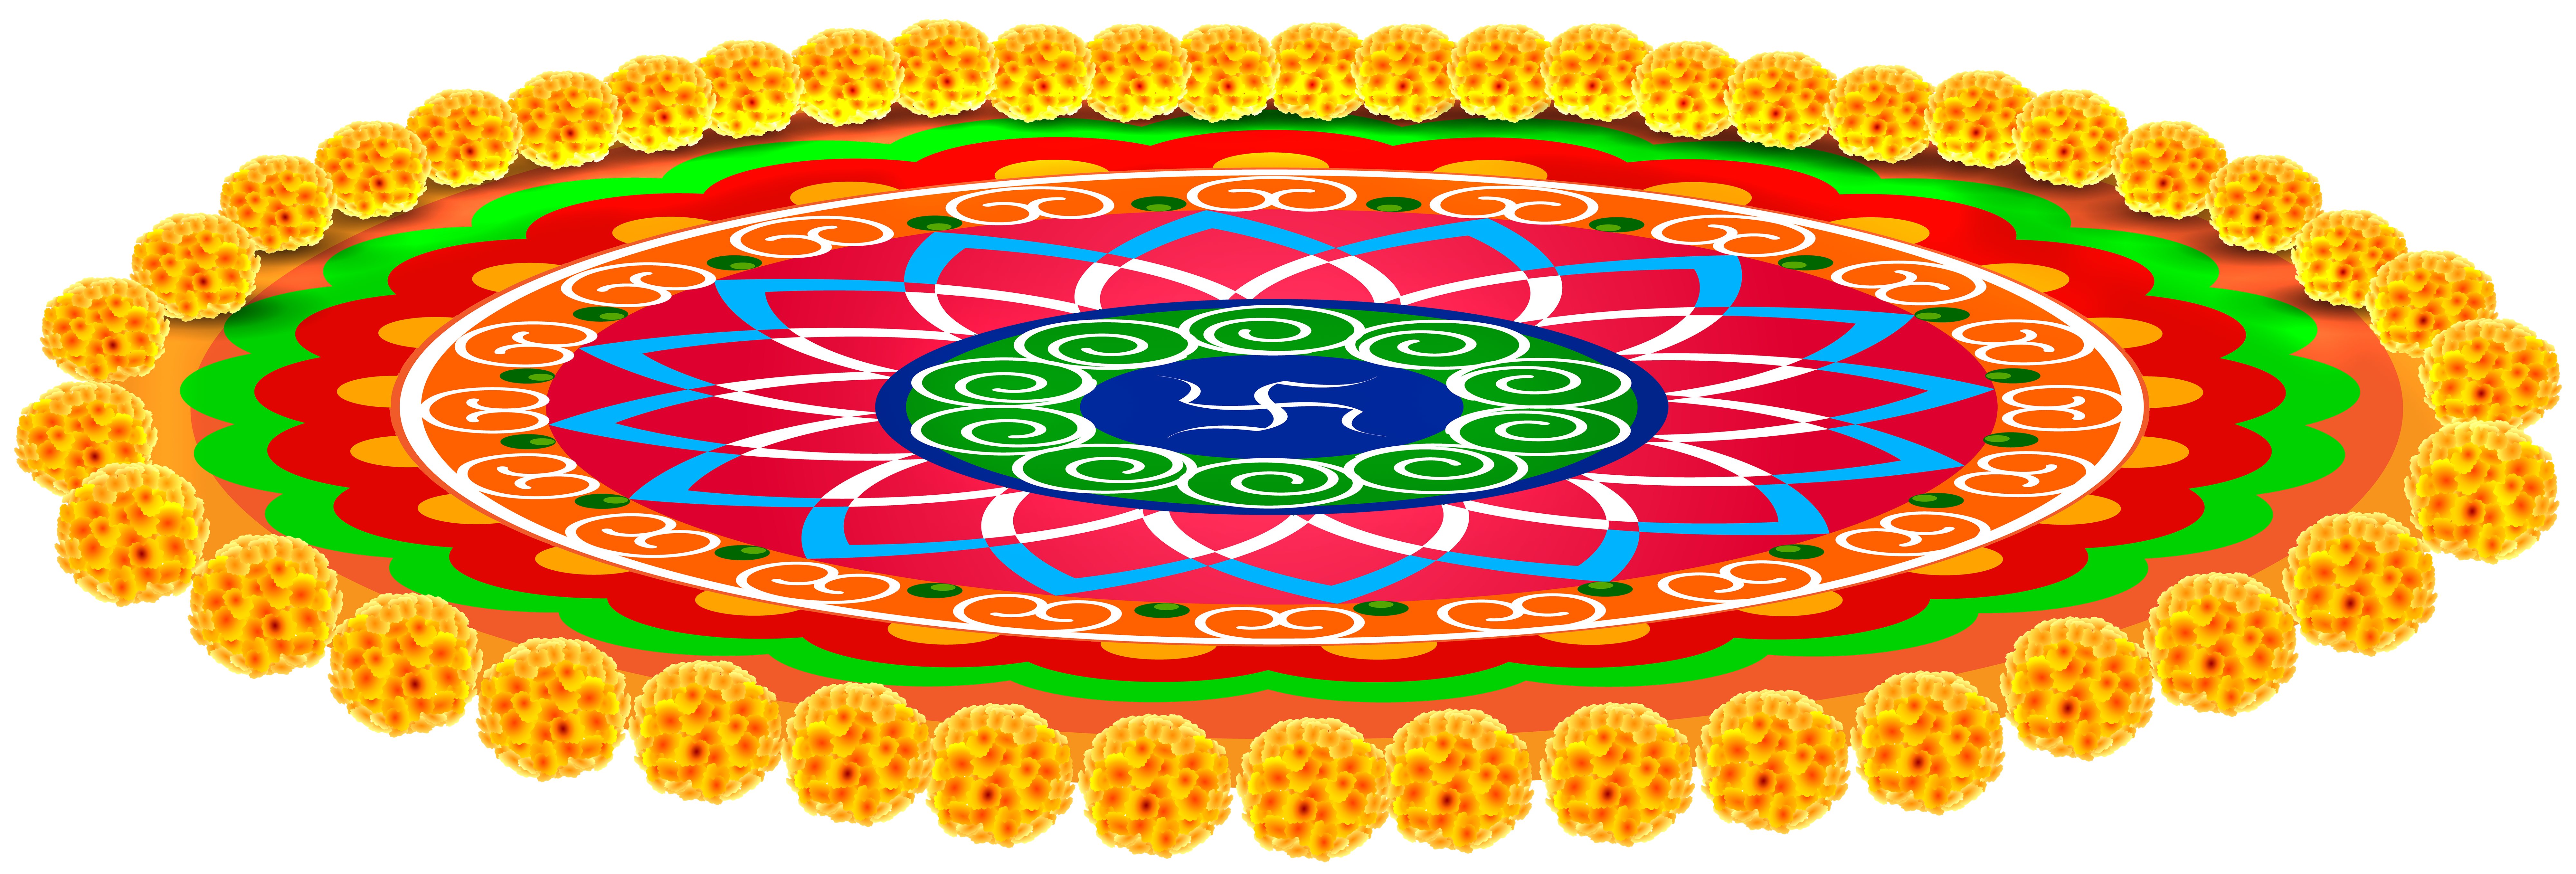 Student clipart carpet. Indian with flowers transparent